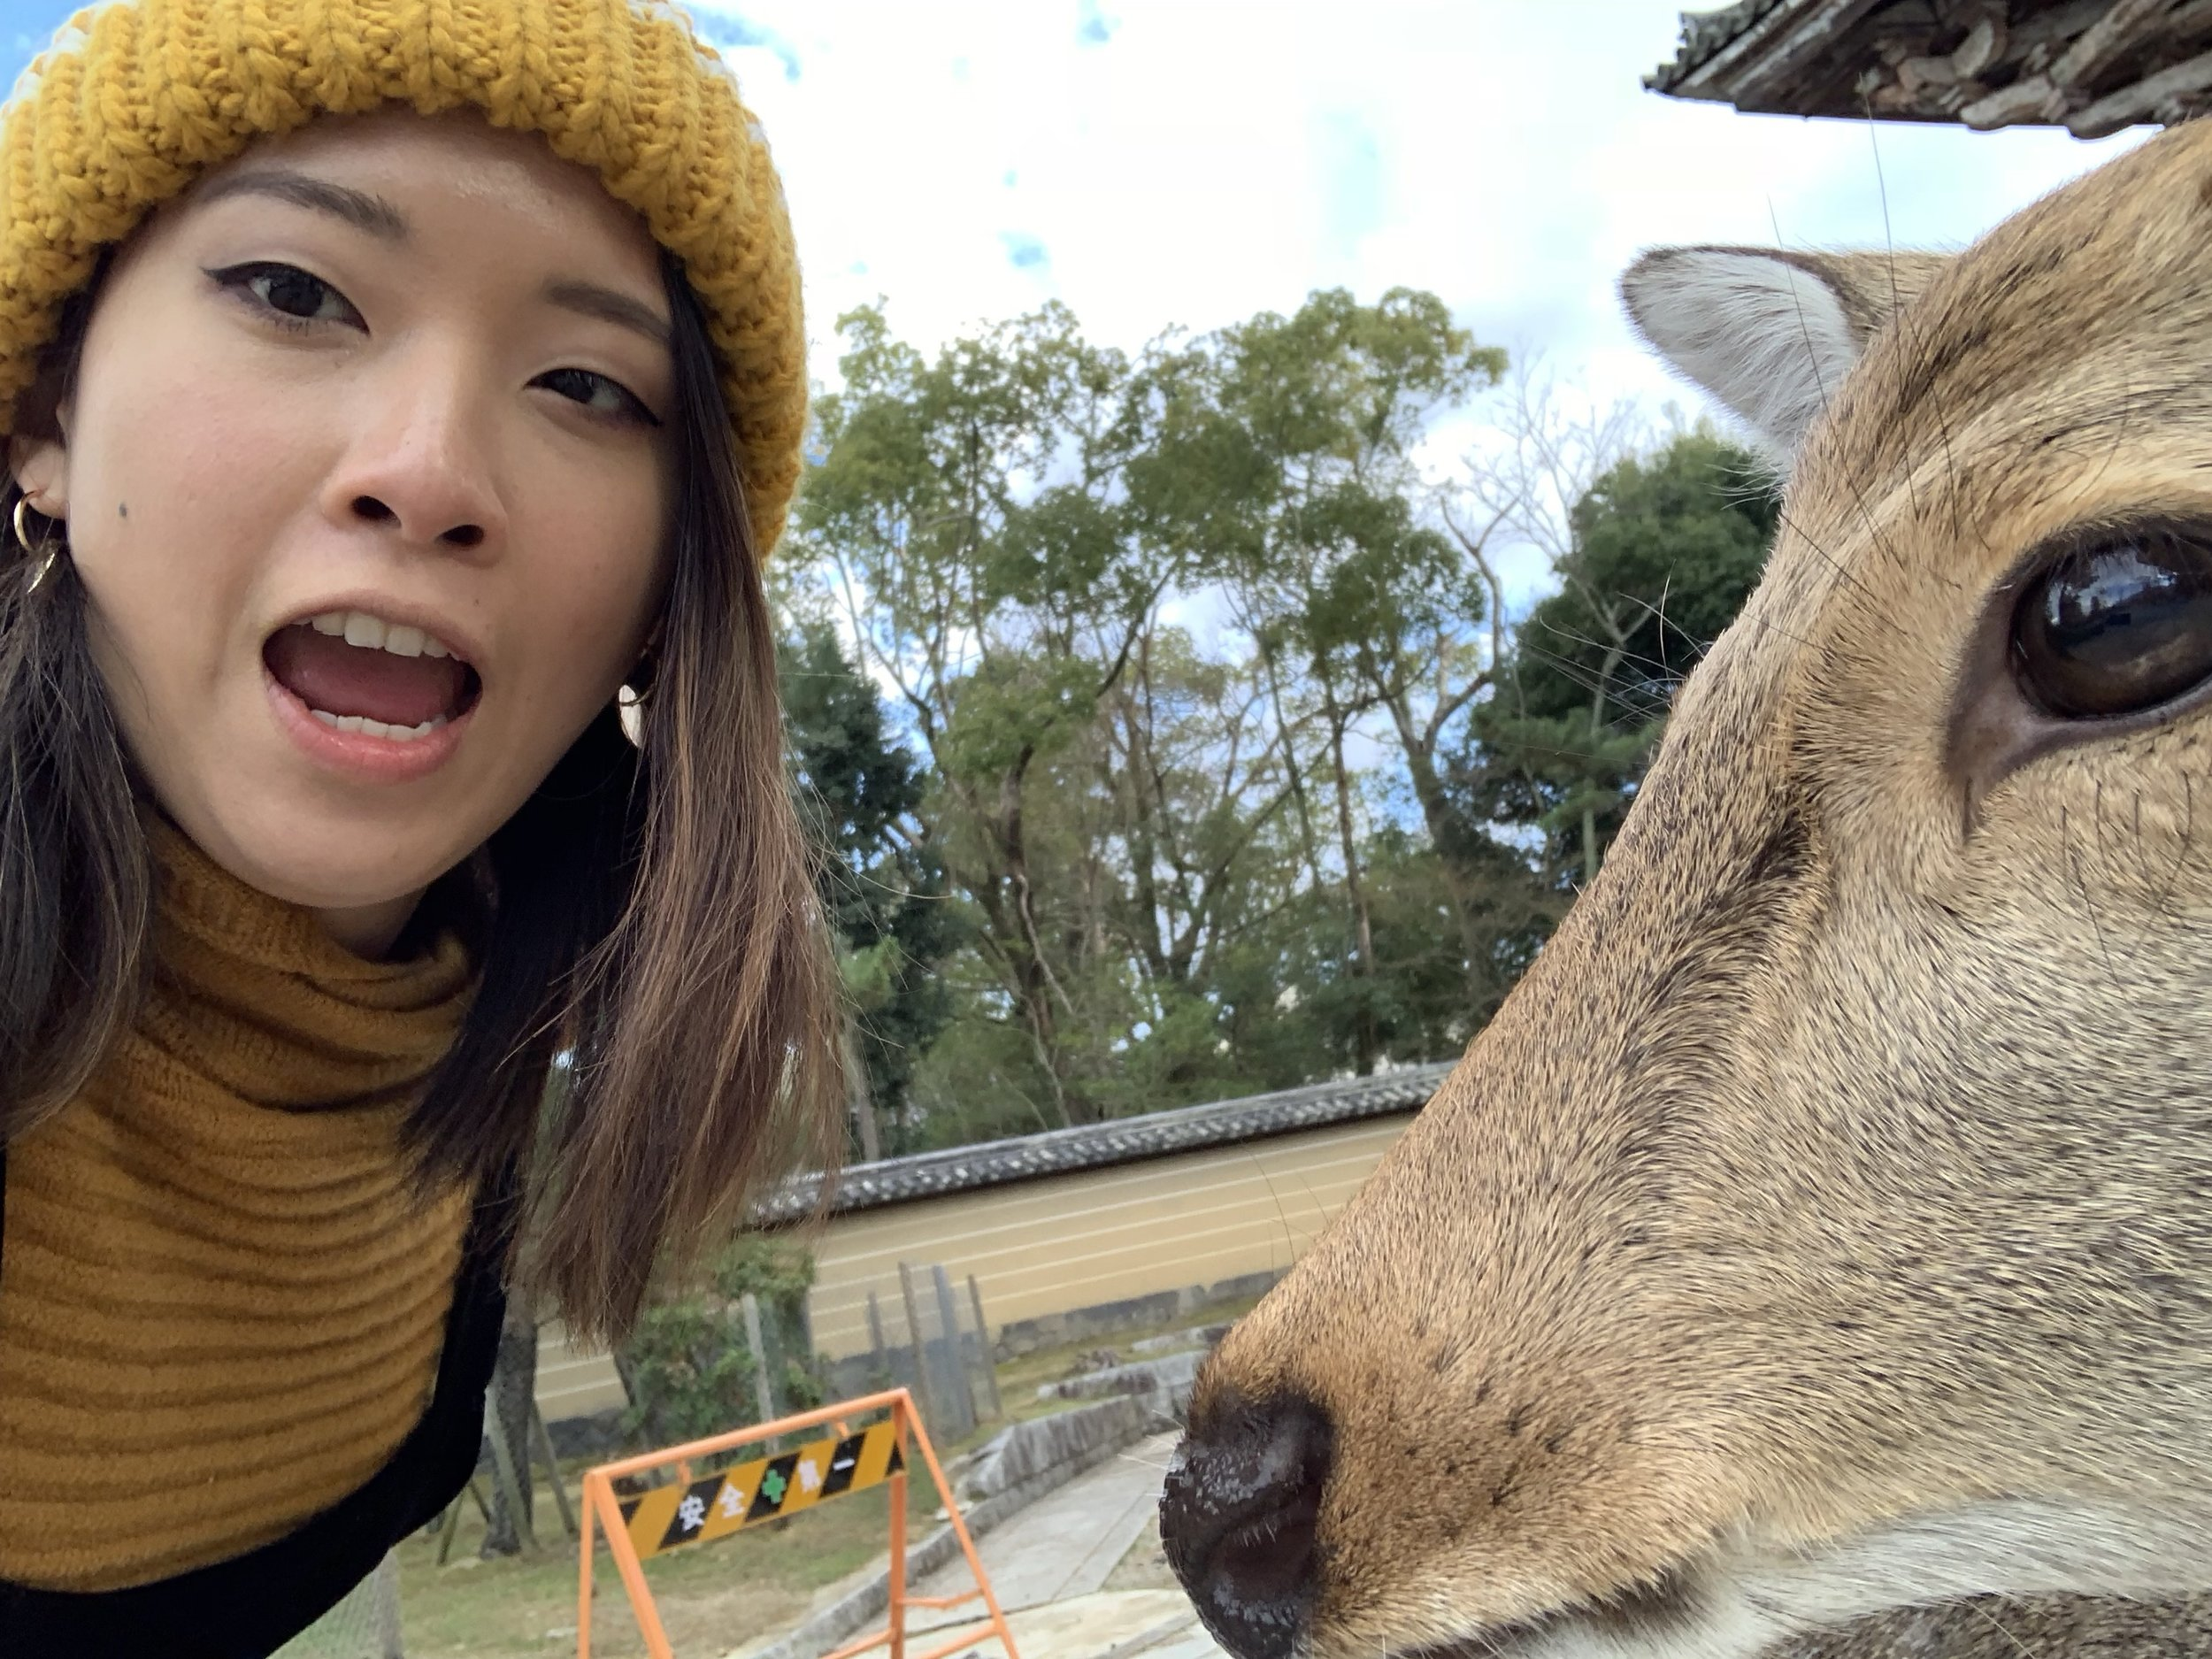 A little SELFIE with the Nara deer hahahaha